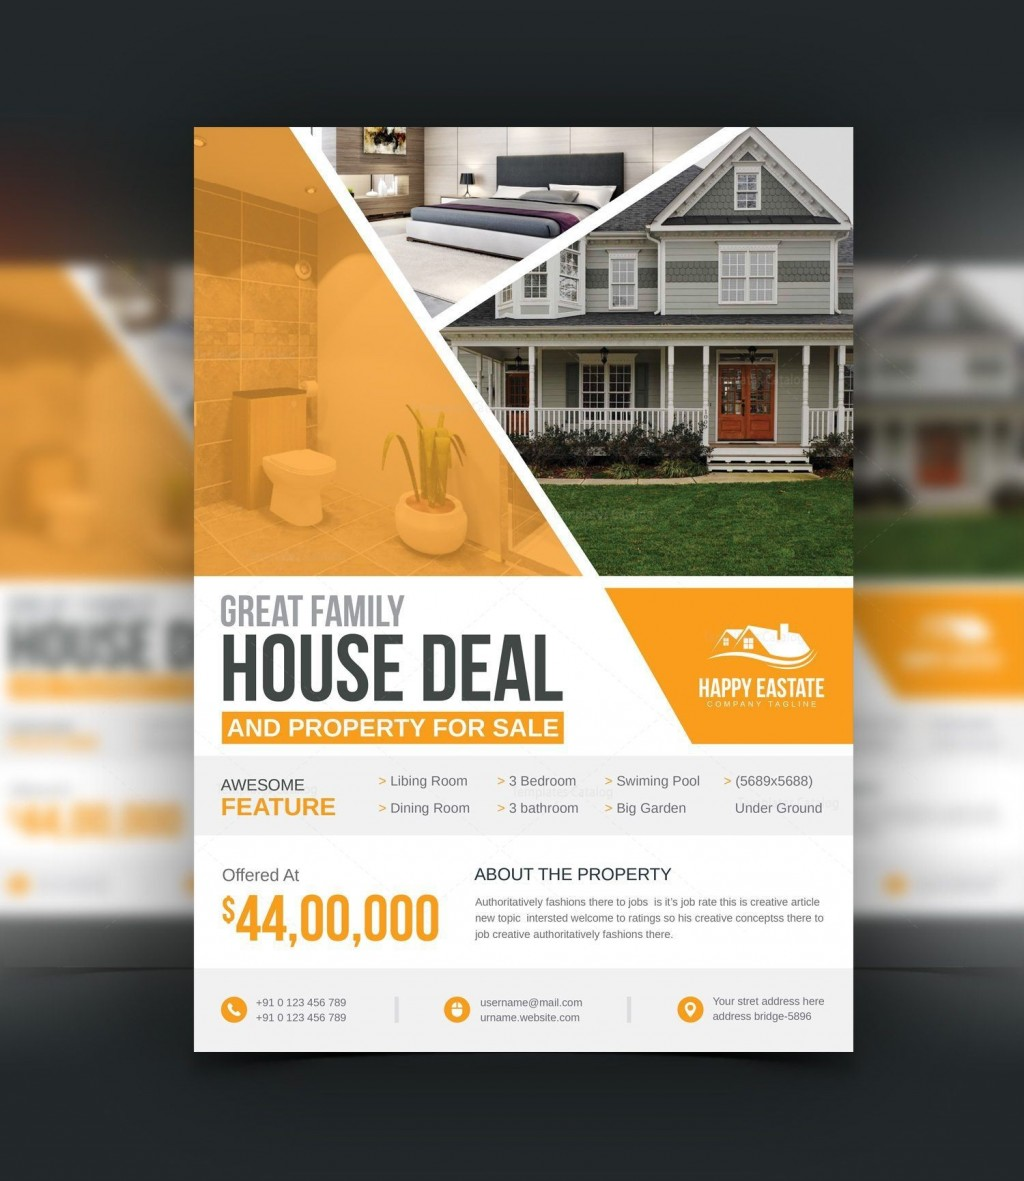 004 Awful Open House Flyer Template Highest Clarity  Templates Word Free School MicrosoftLarge